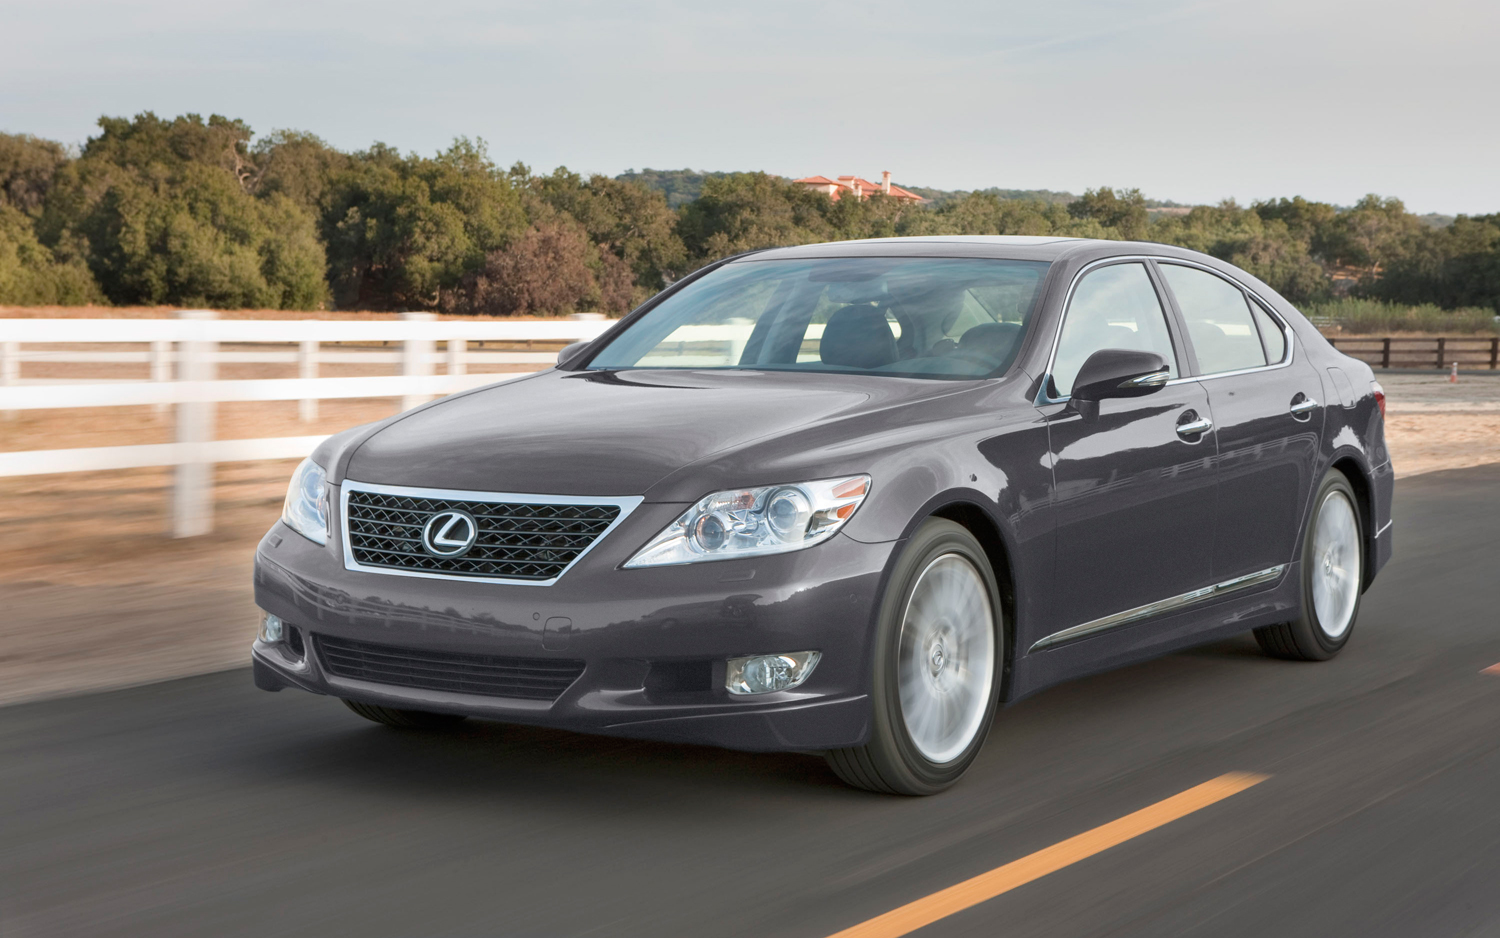 Lexus LS 460 2012 photo - 12